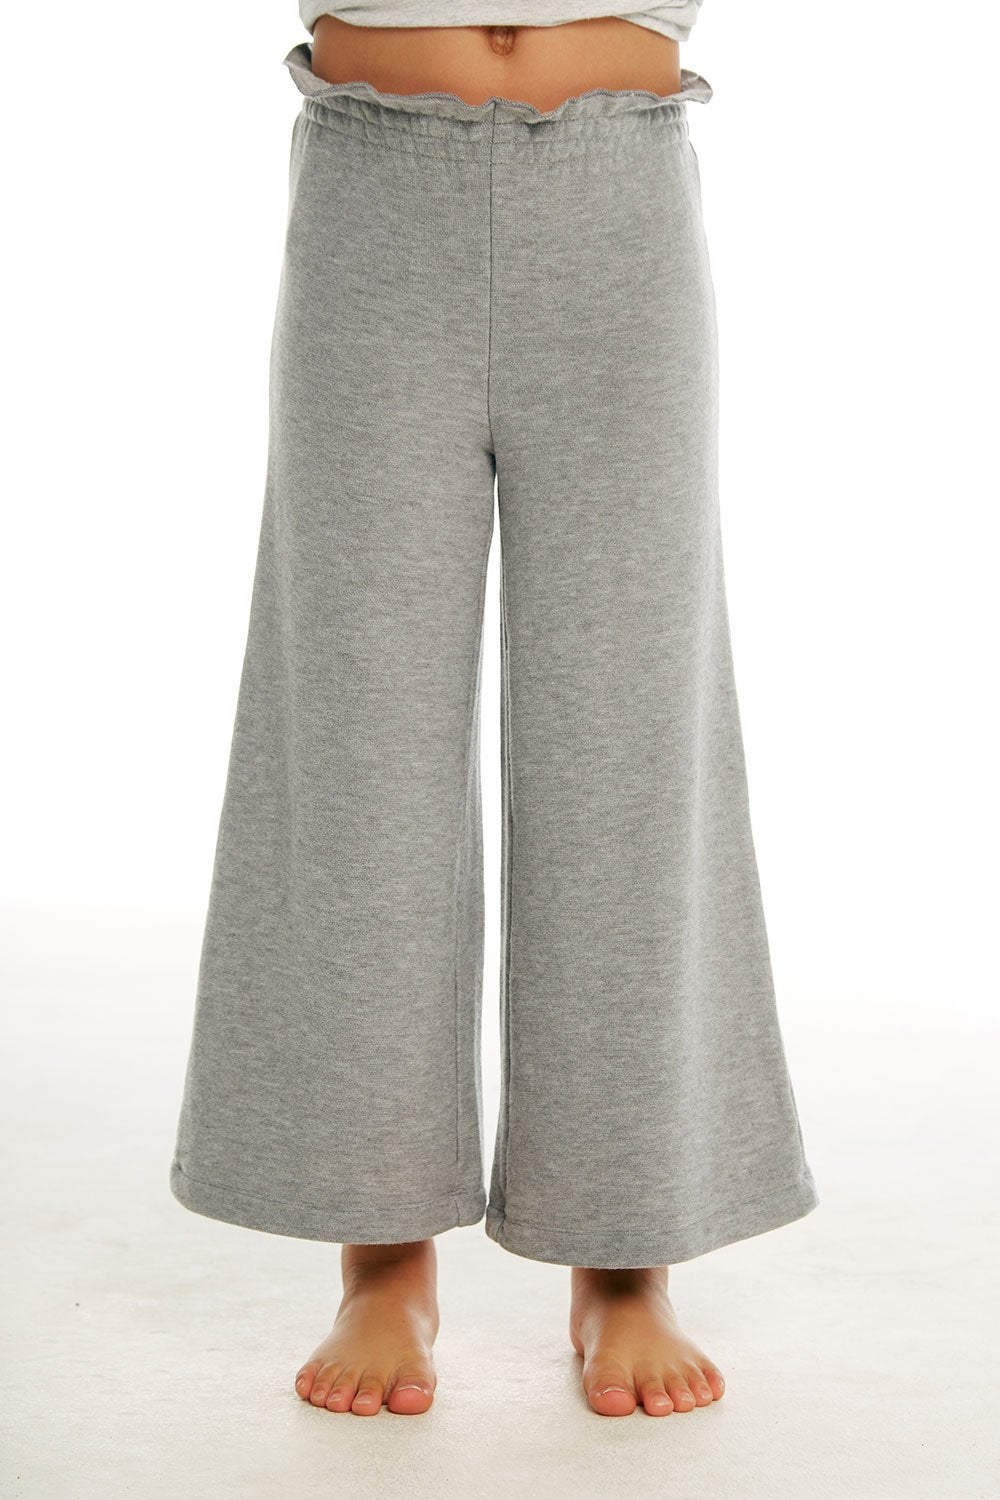 GIRLS COZY KNIT PAPERBAG WAIST WIDE LEG PANT